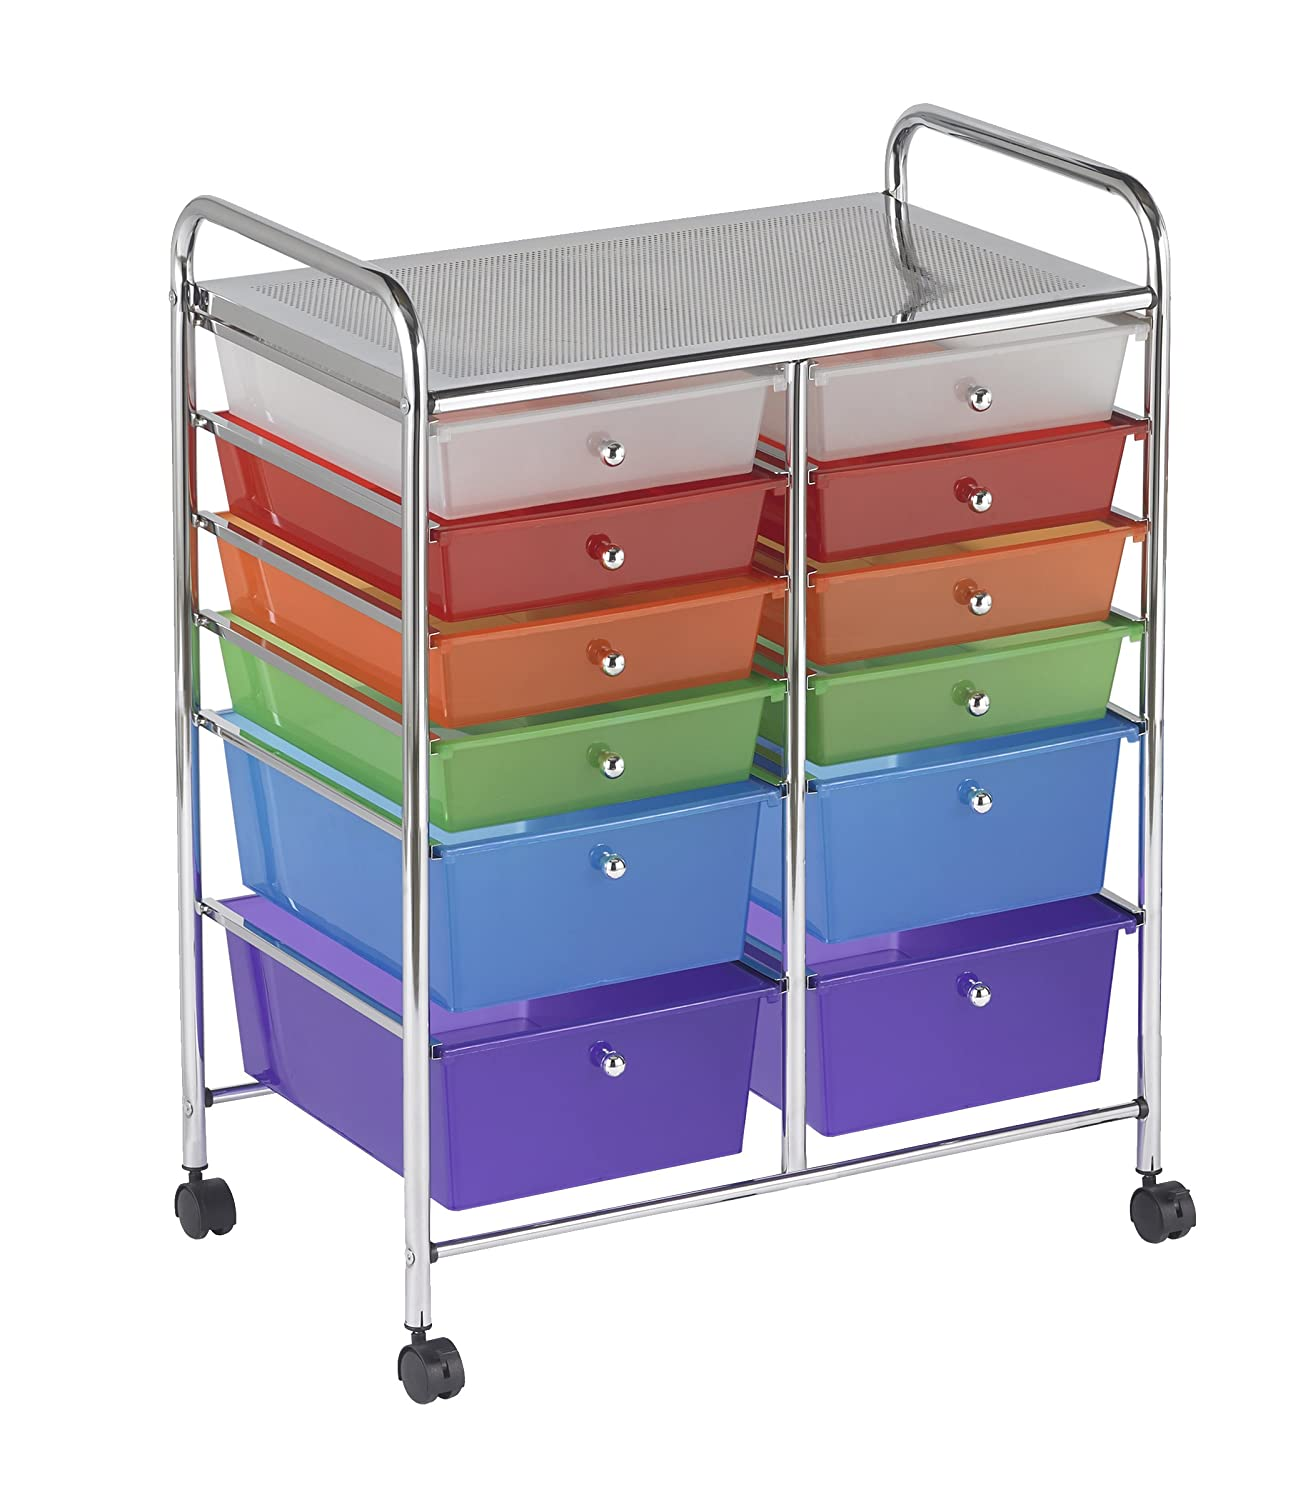 ECR4Kids 12-Drawer Mobile Organizer, 31.75 H, Assorted Colors 31.75 H ELR-20104-AS